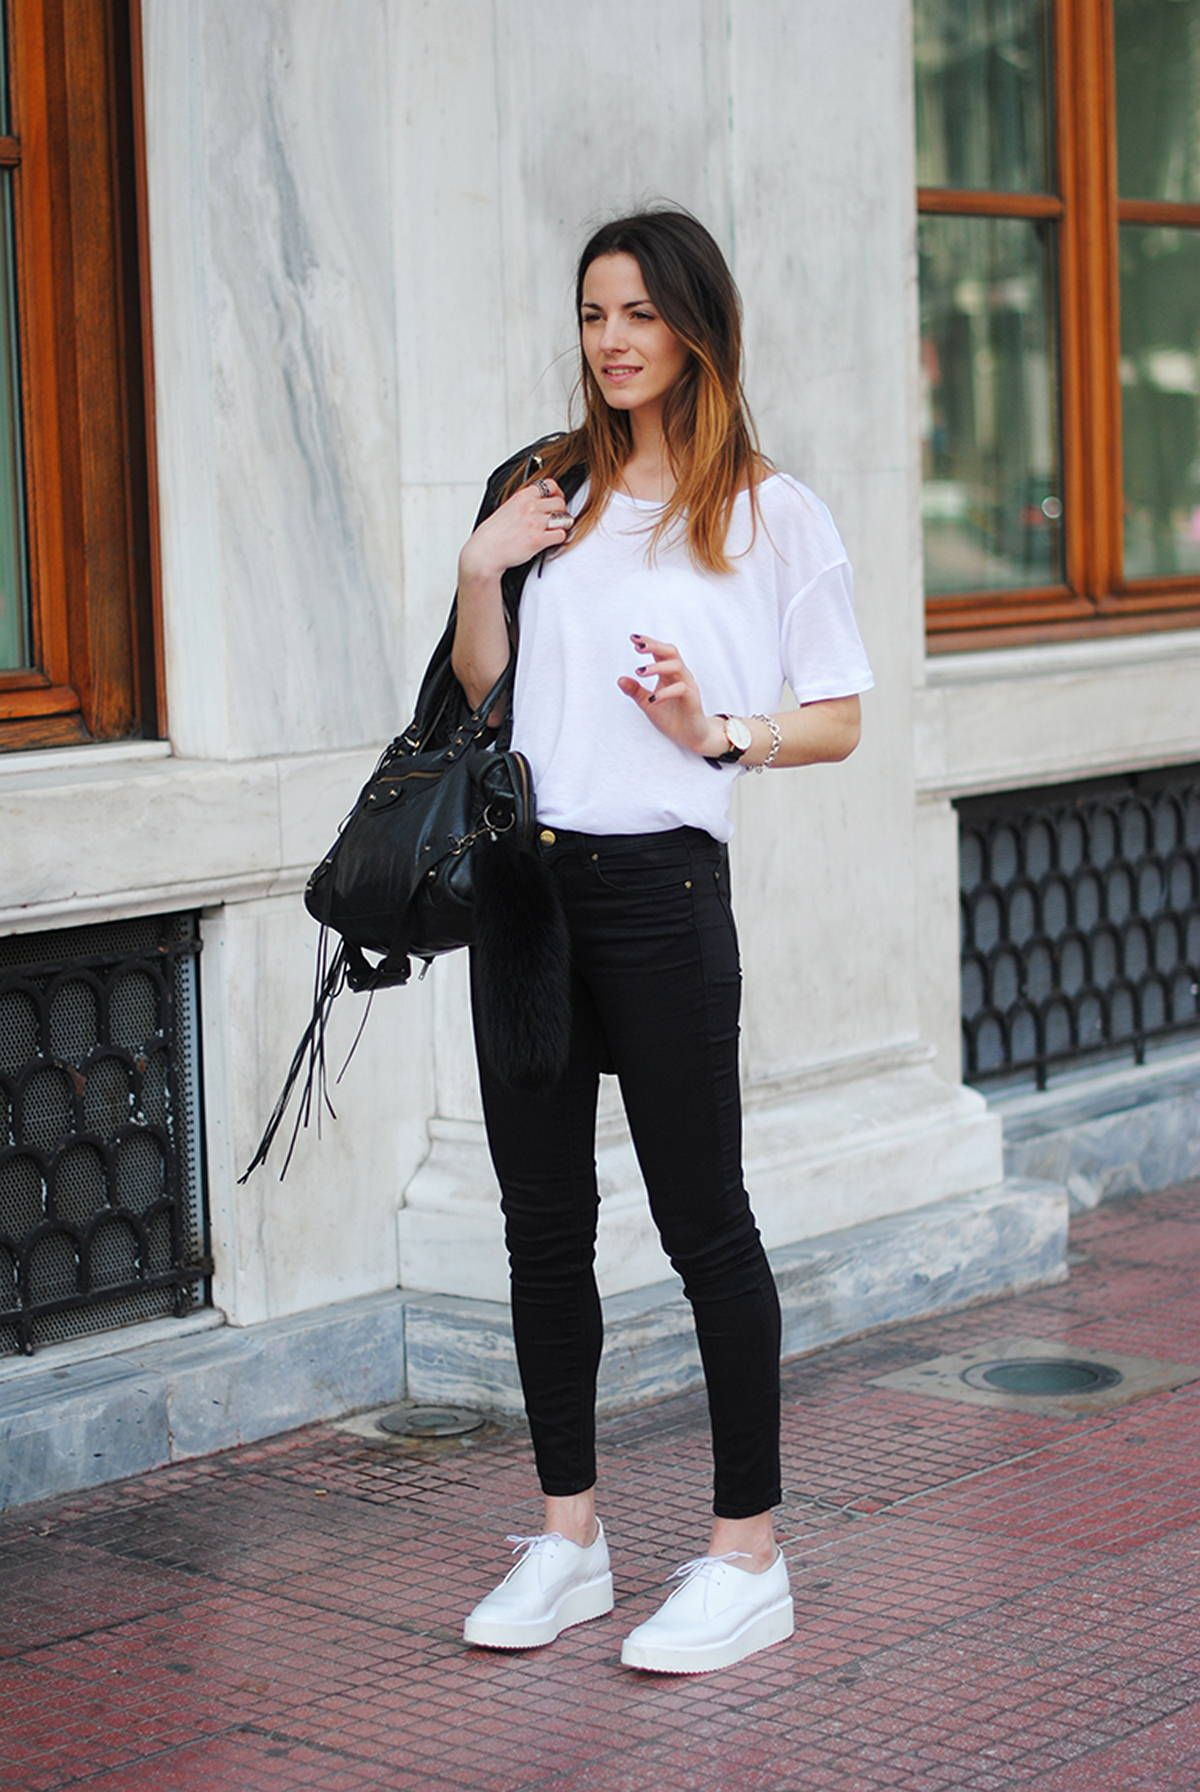 112 women's white sneakers outfit idea  white sneakers